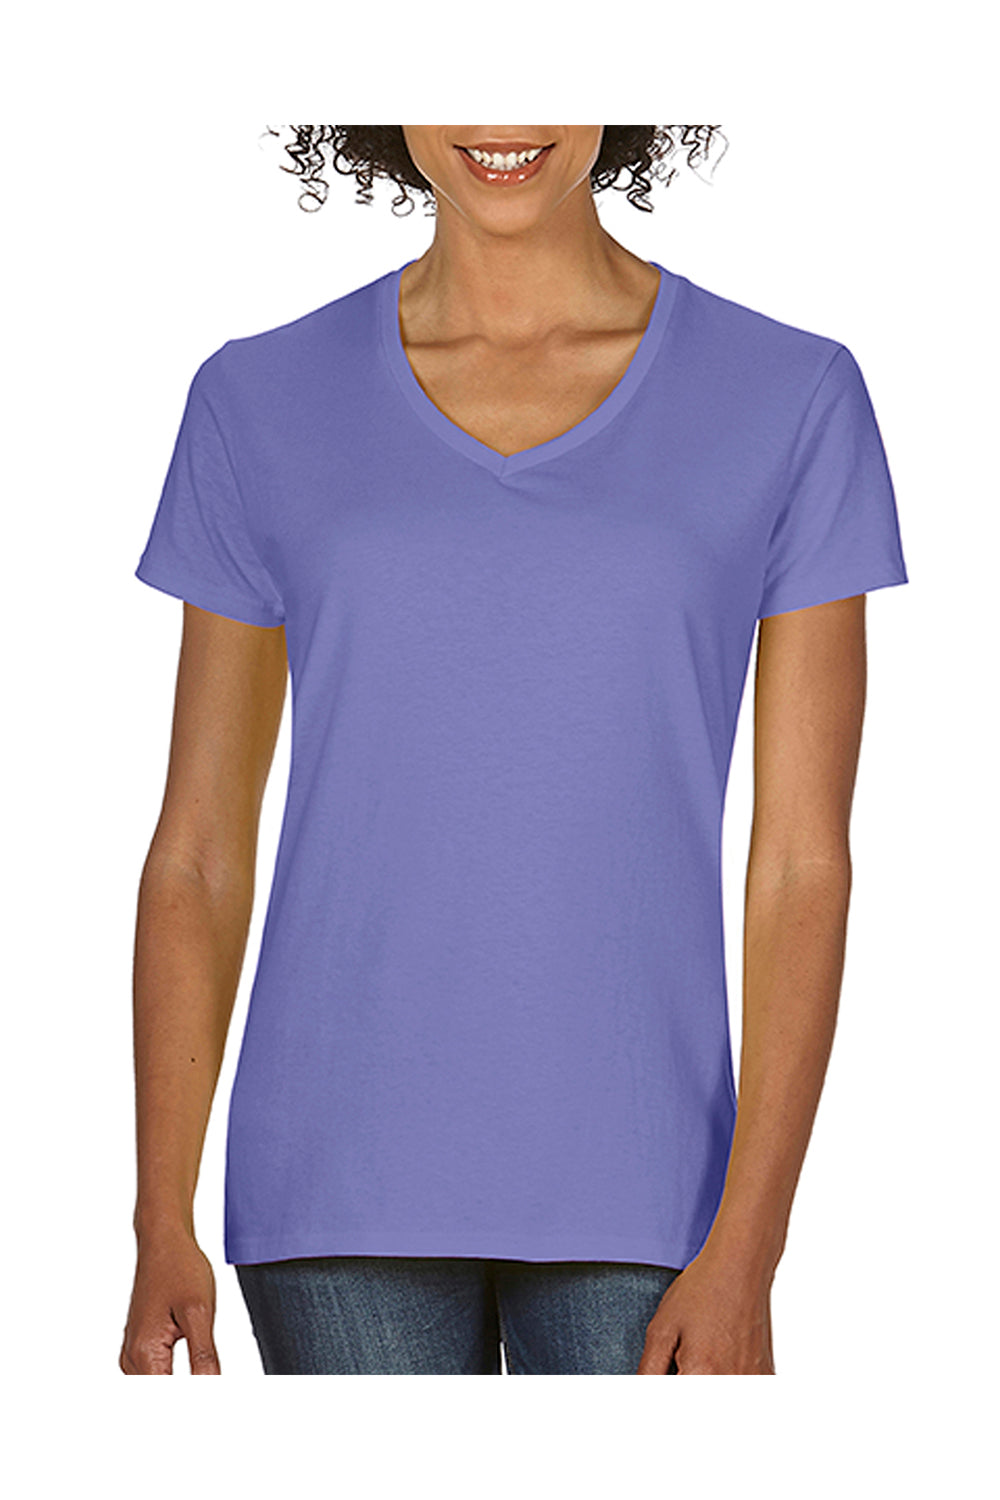 Comfort Colors C3199 Womens Short Sleeve V-Neck T-Shirt Violet Purple Front